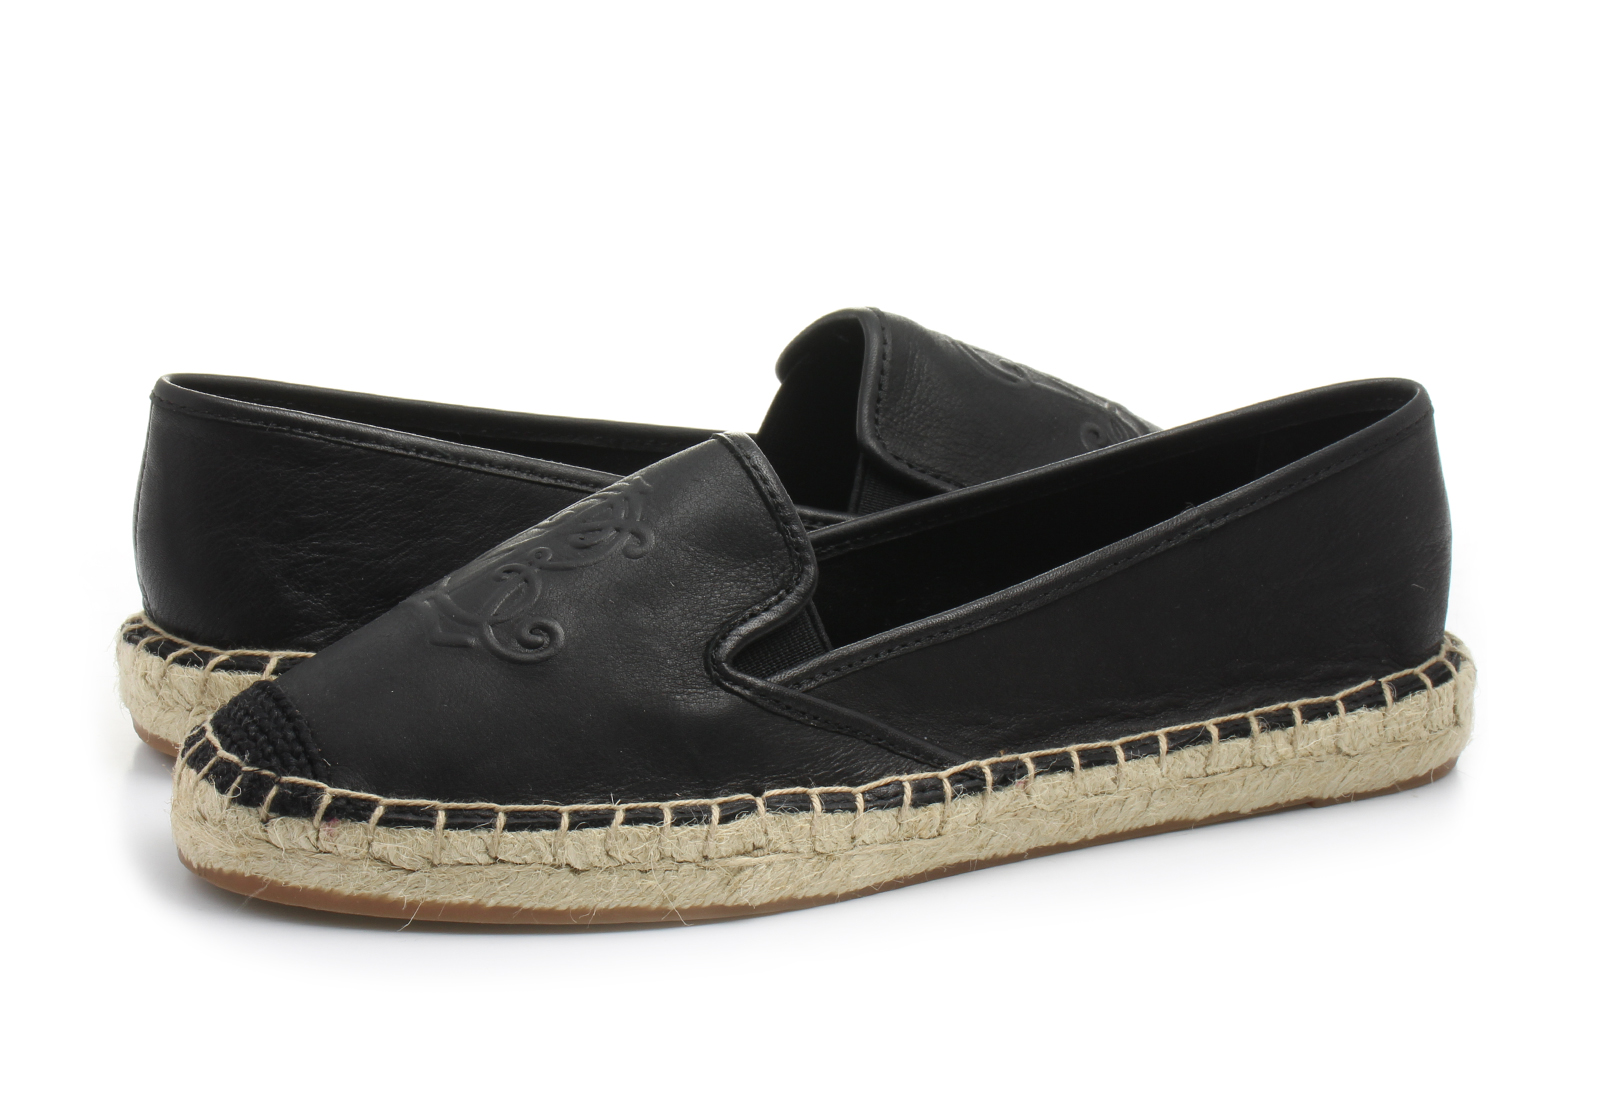 Discount Lauren Ralph Lauren Destini Black Espadrilles for Women Sale Online